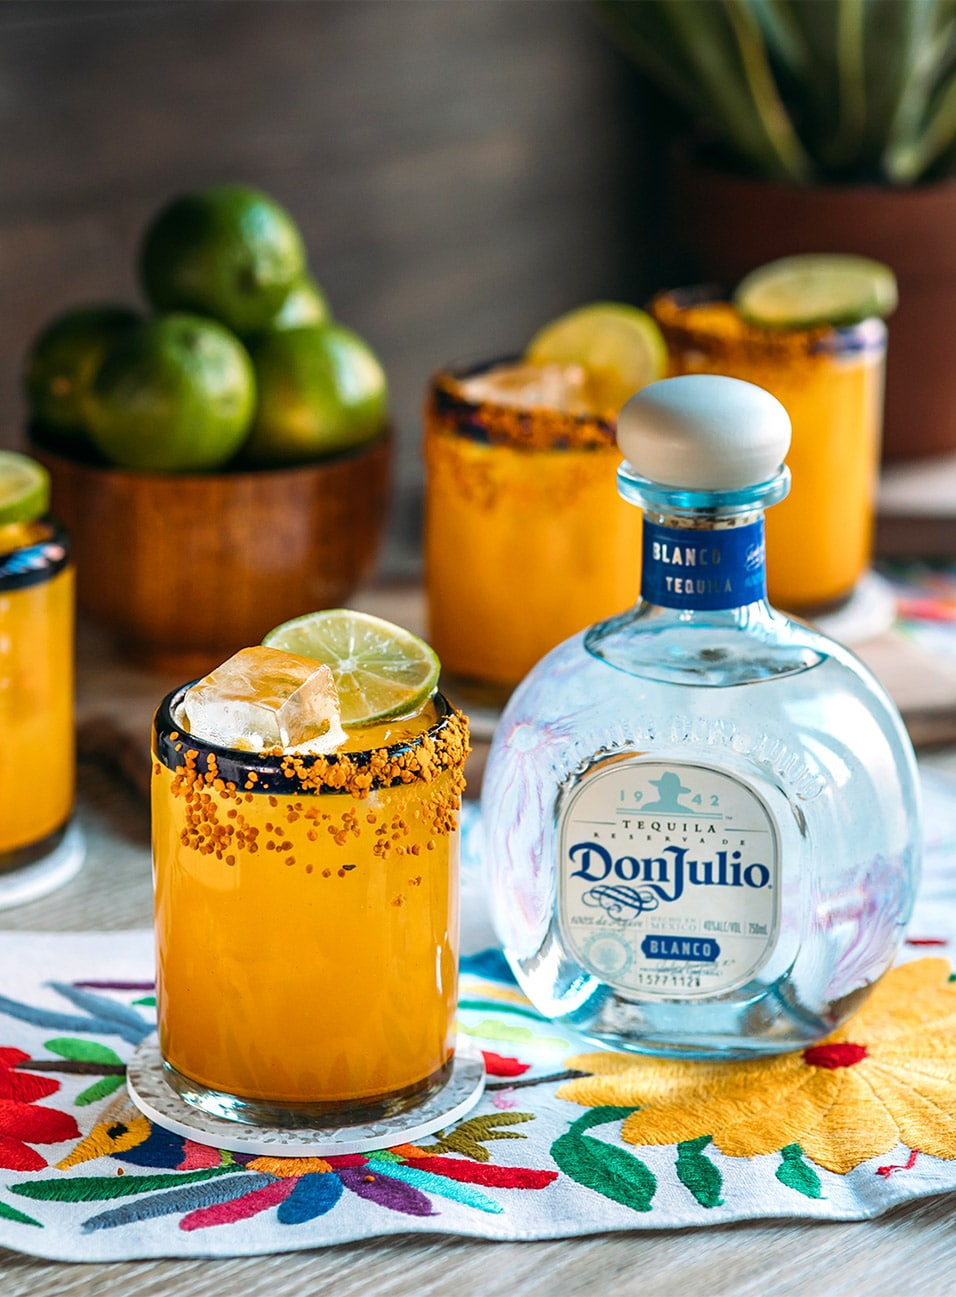 Turmerican Cocktail made with Don Julio Blanco Tequila